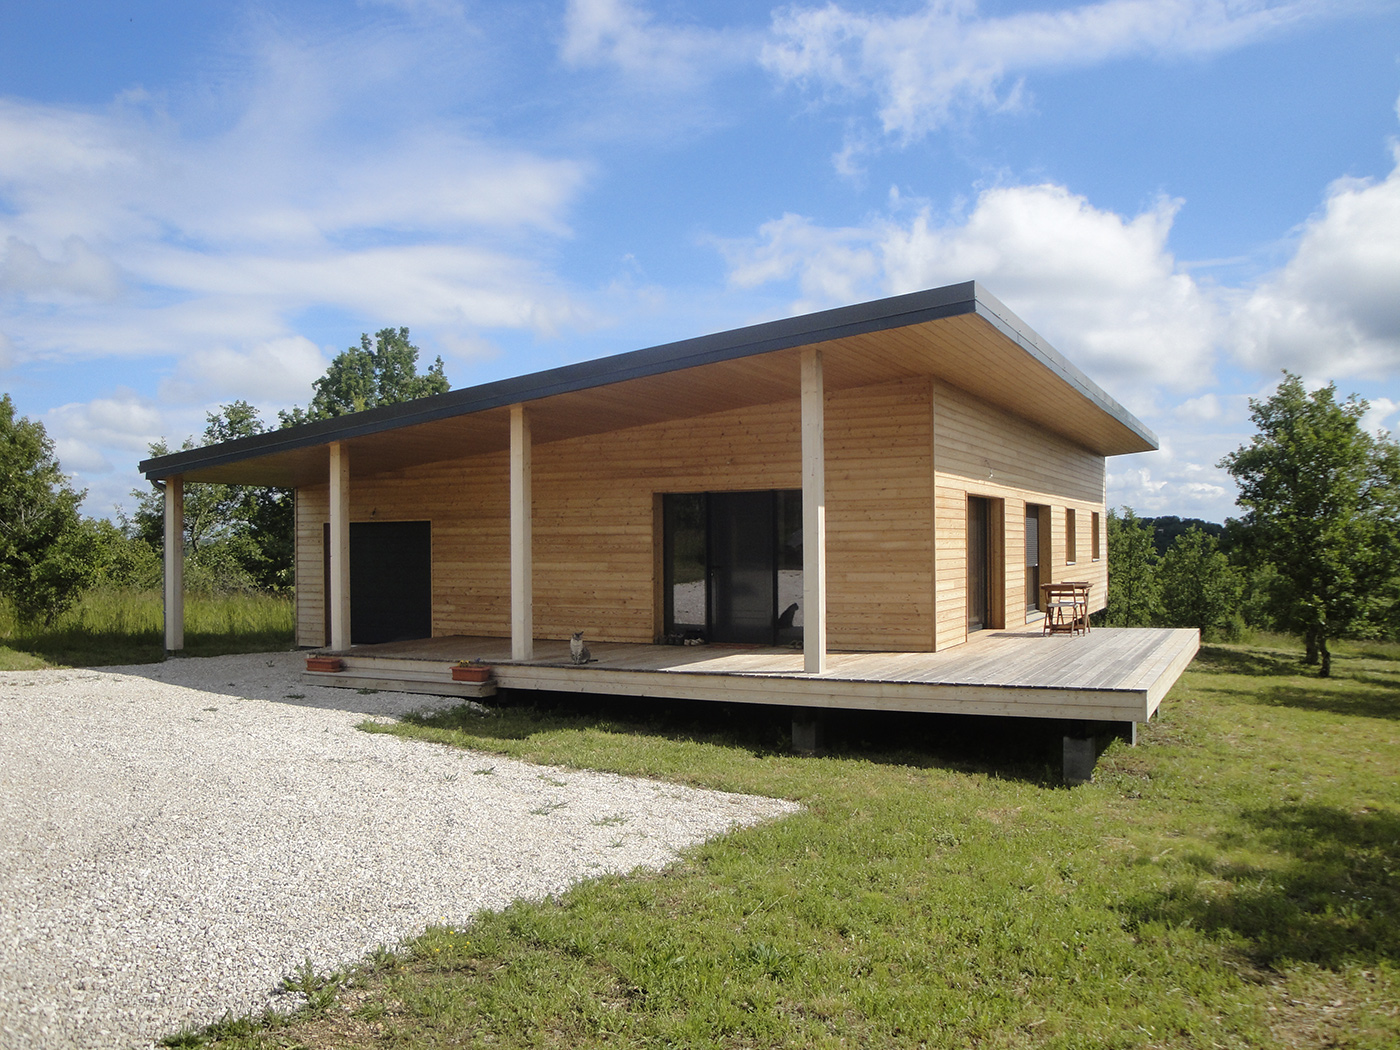 Maison contemporaine en ossature bois par evobois la for Construction contemporaine